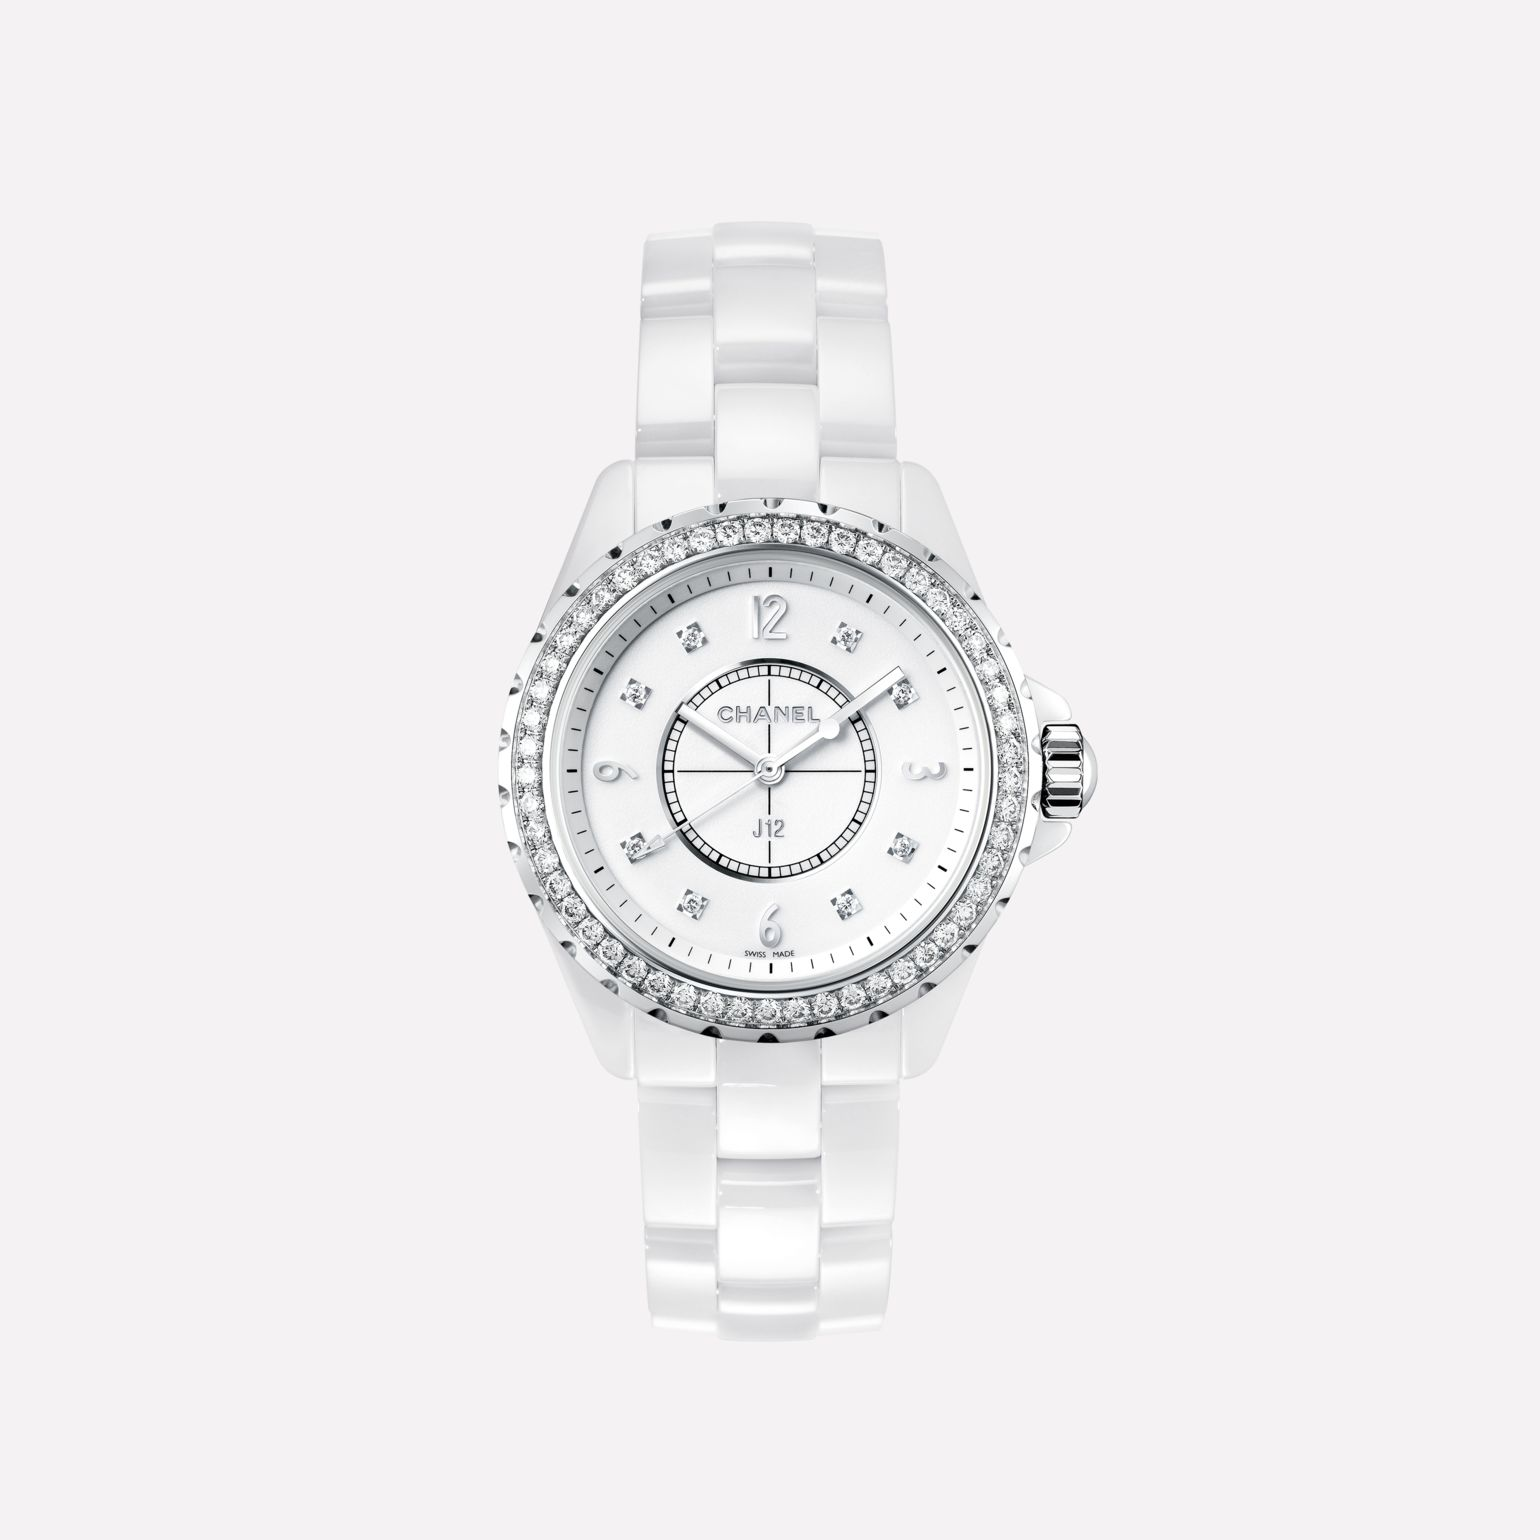 J12 Watch White highly resistant ceramic and steel, brilliant-cut diamond bezel and indicators